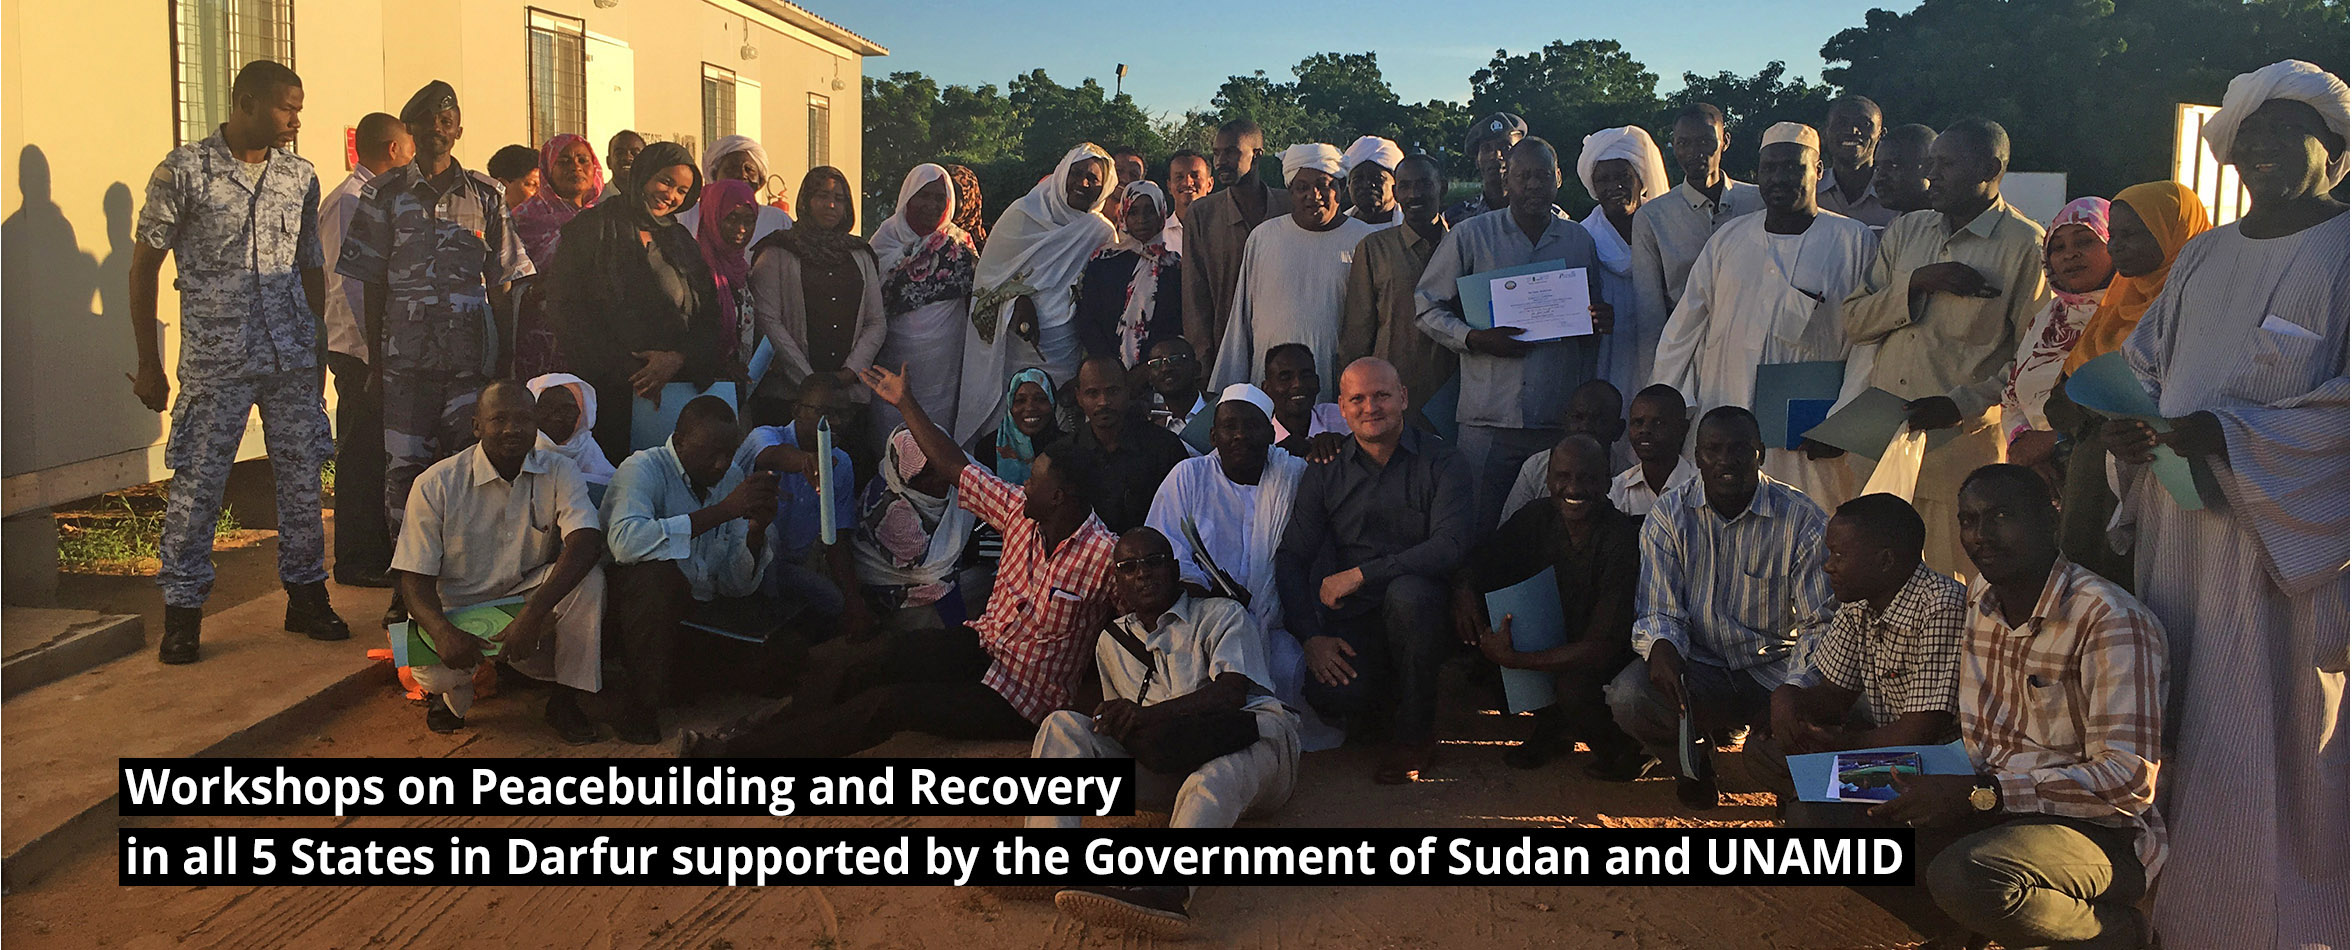 slide-6 Workshops on Peacebuilding and Recovery in all 5 states in Darfur supported by the Government of Sudan and UNAMID – August & September 2018